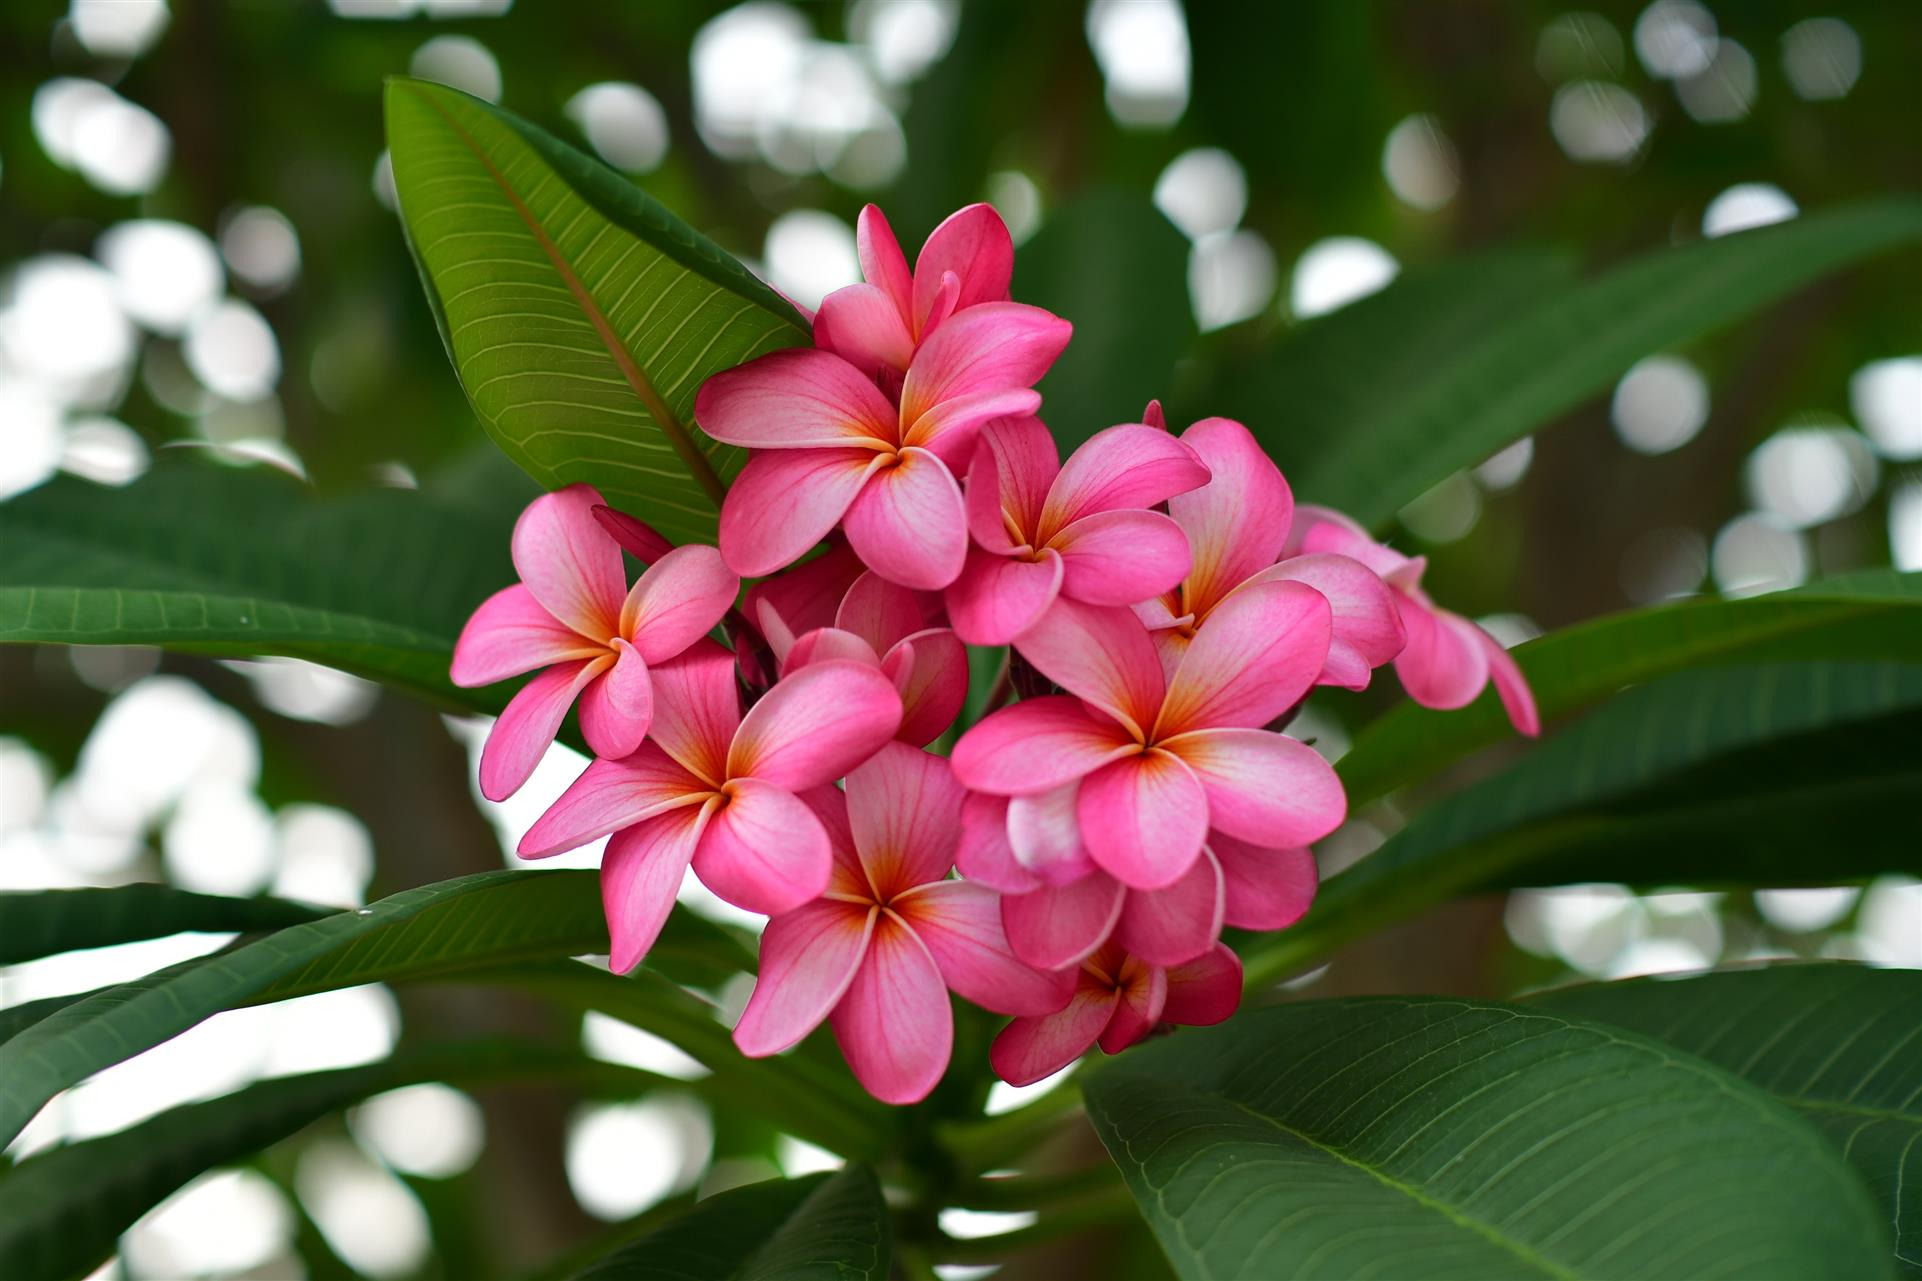 bundle of pink flowers with green leaves